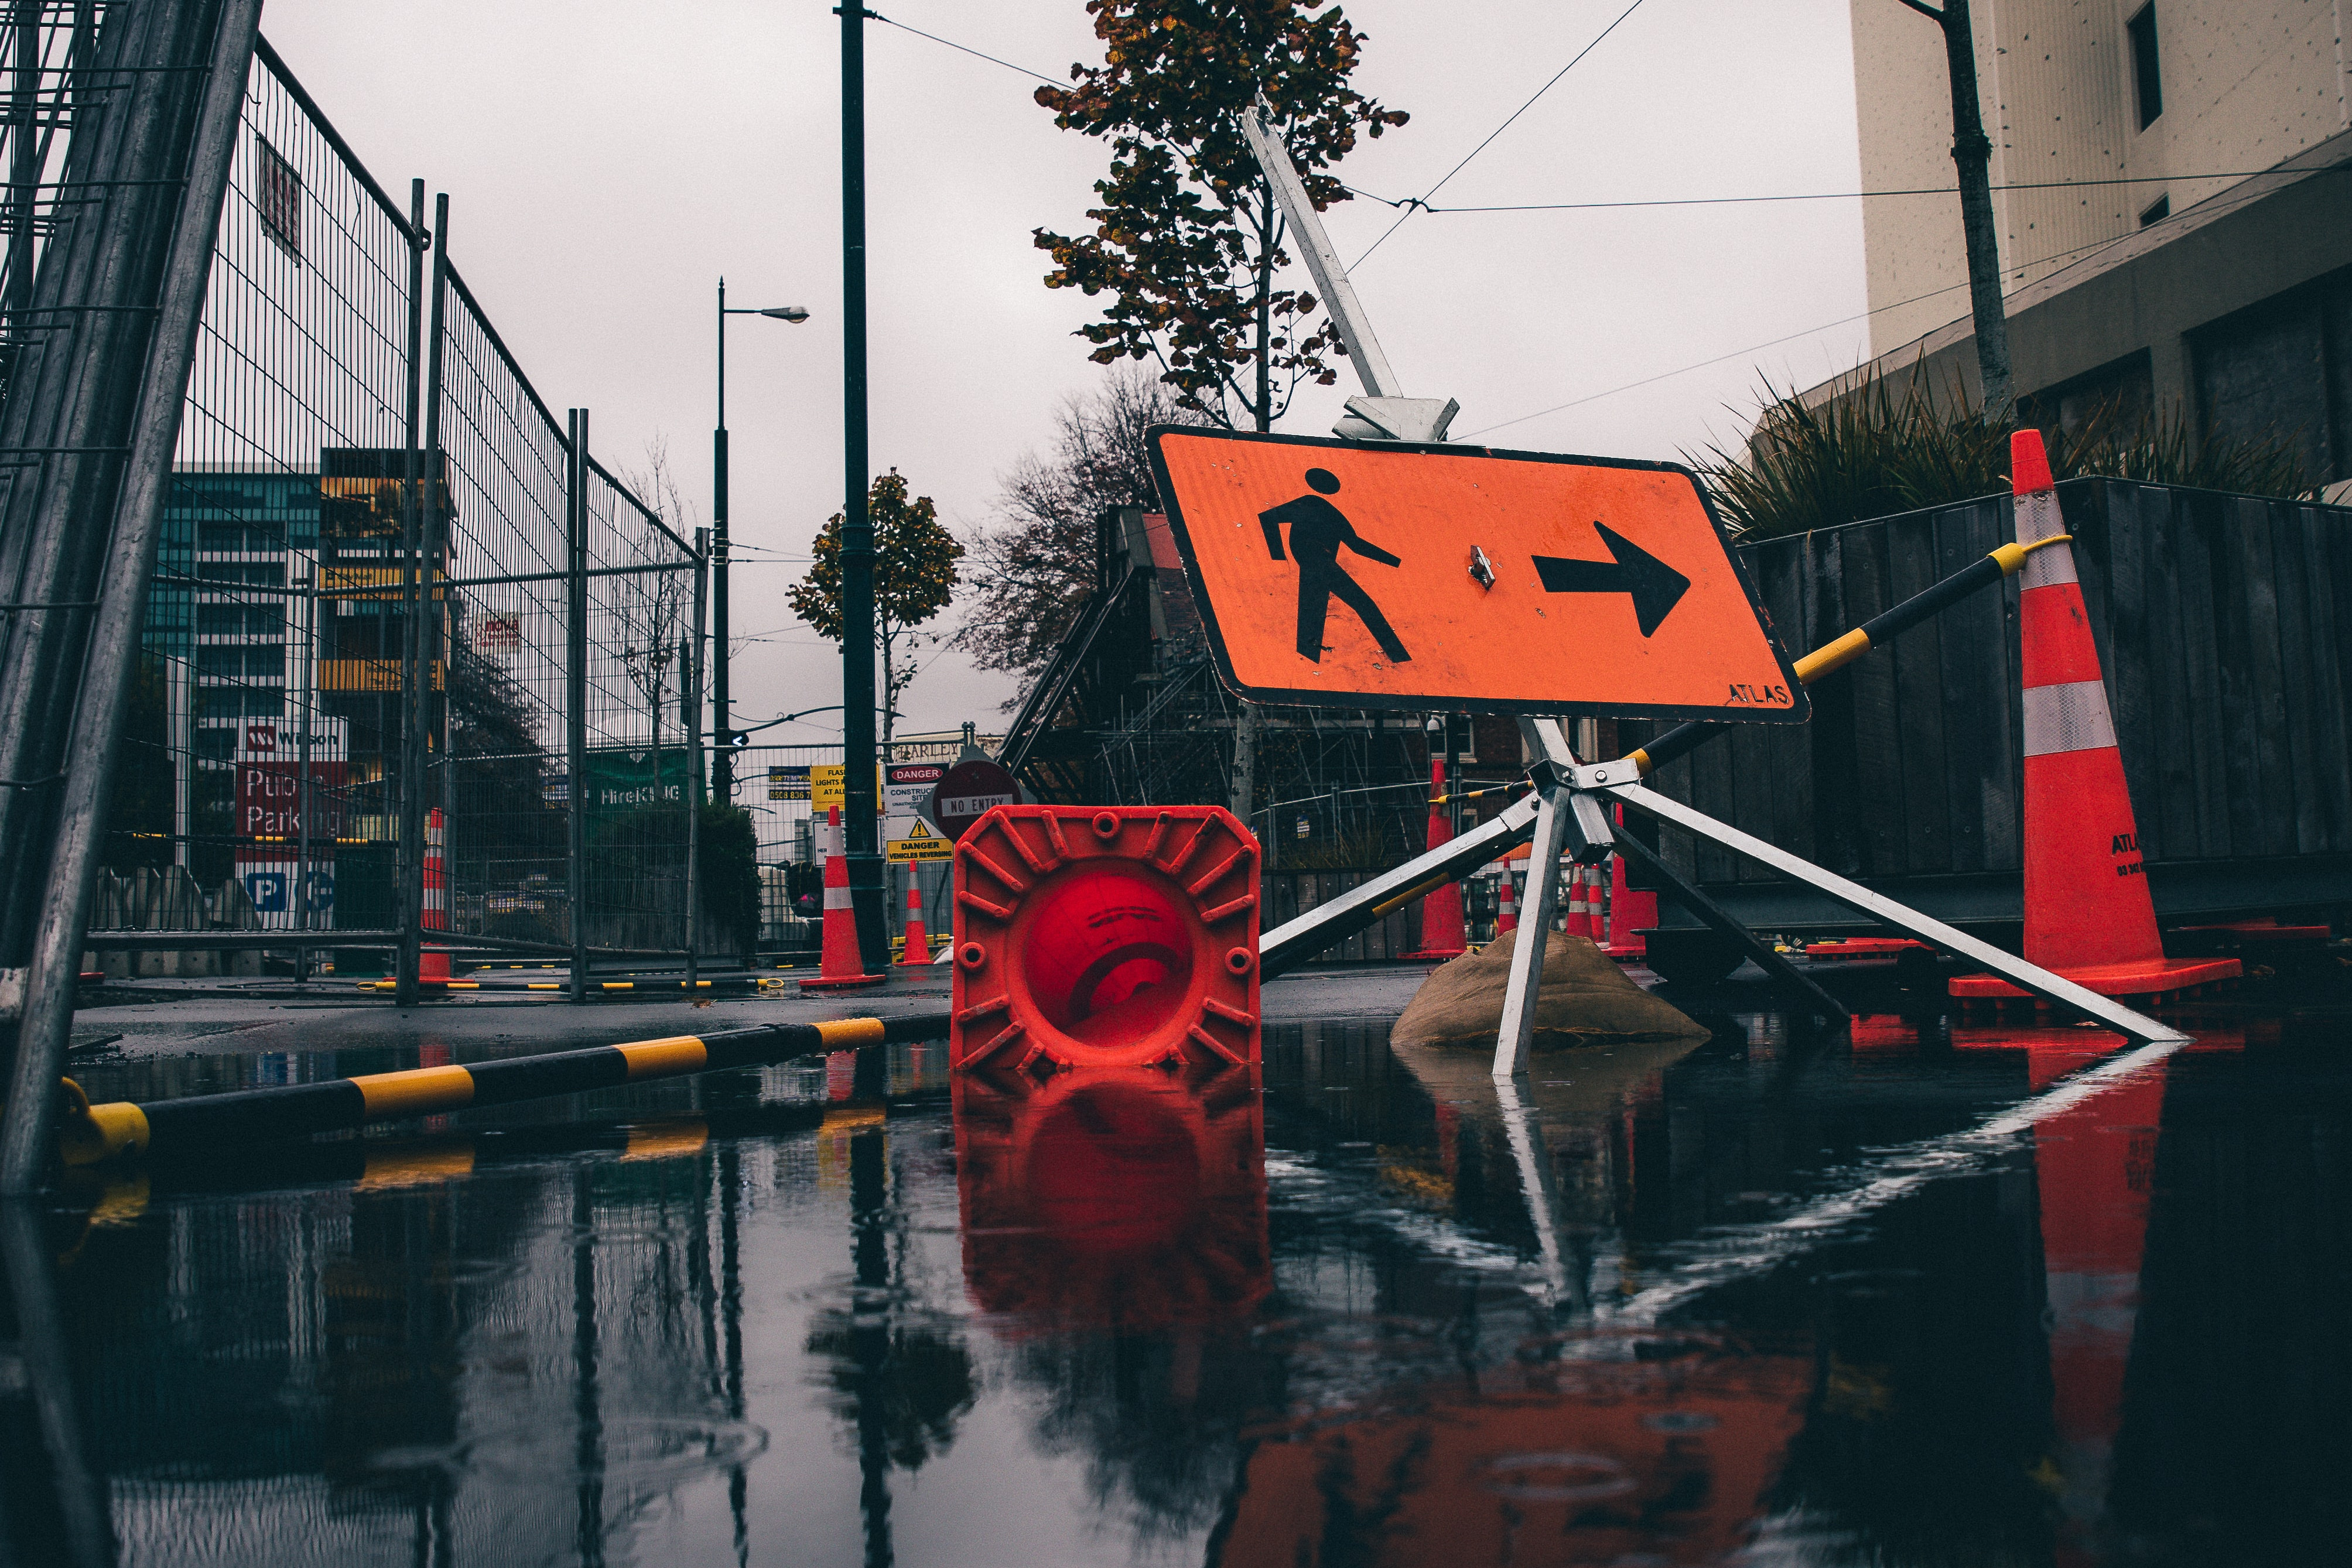 a city street partially flooded with a detour sign for pedestrians